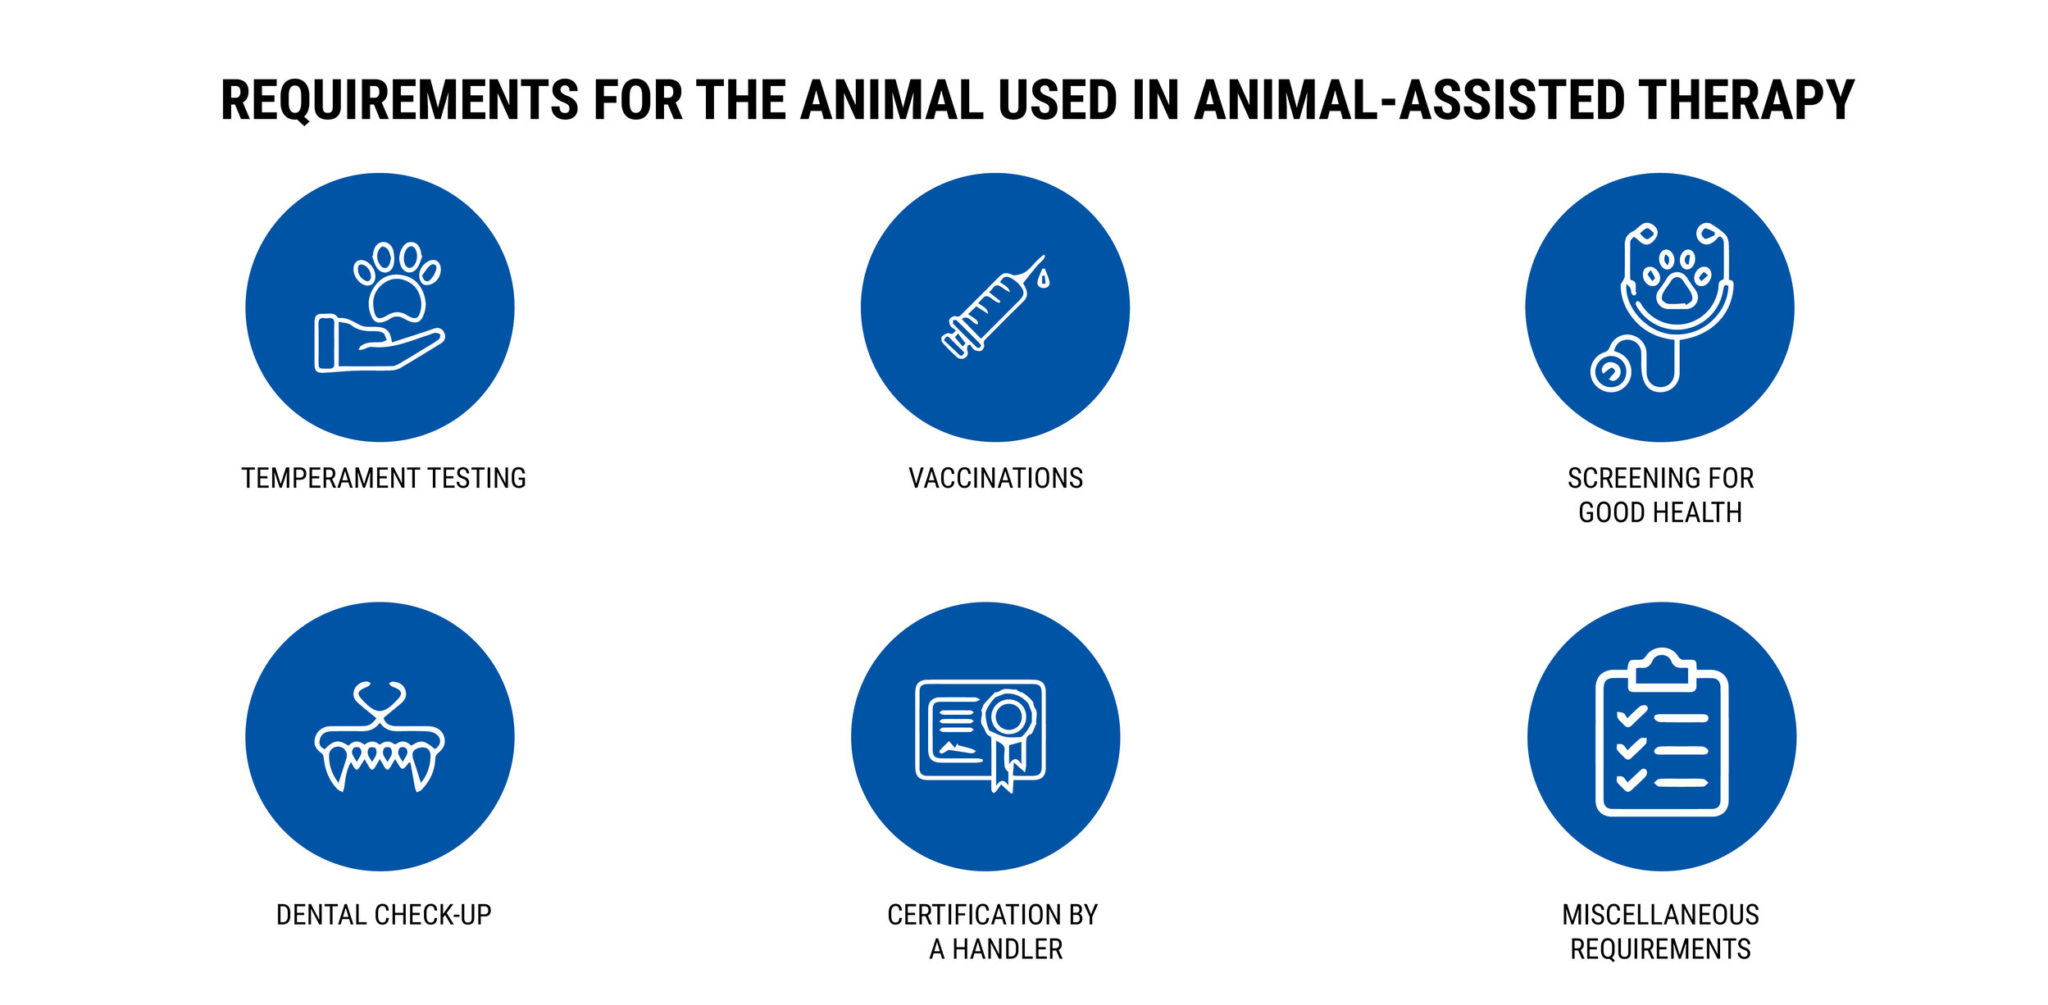 REQUIREMENTS FOR THE ANIMAL-ASSISTED THERAPY